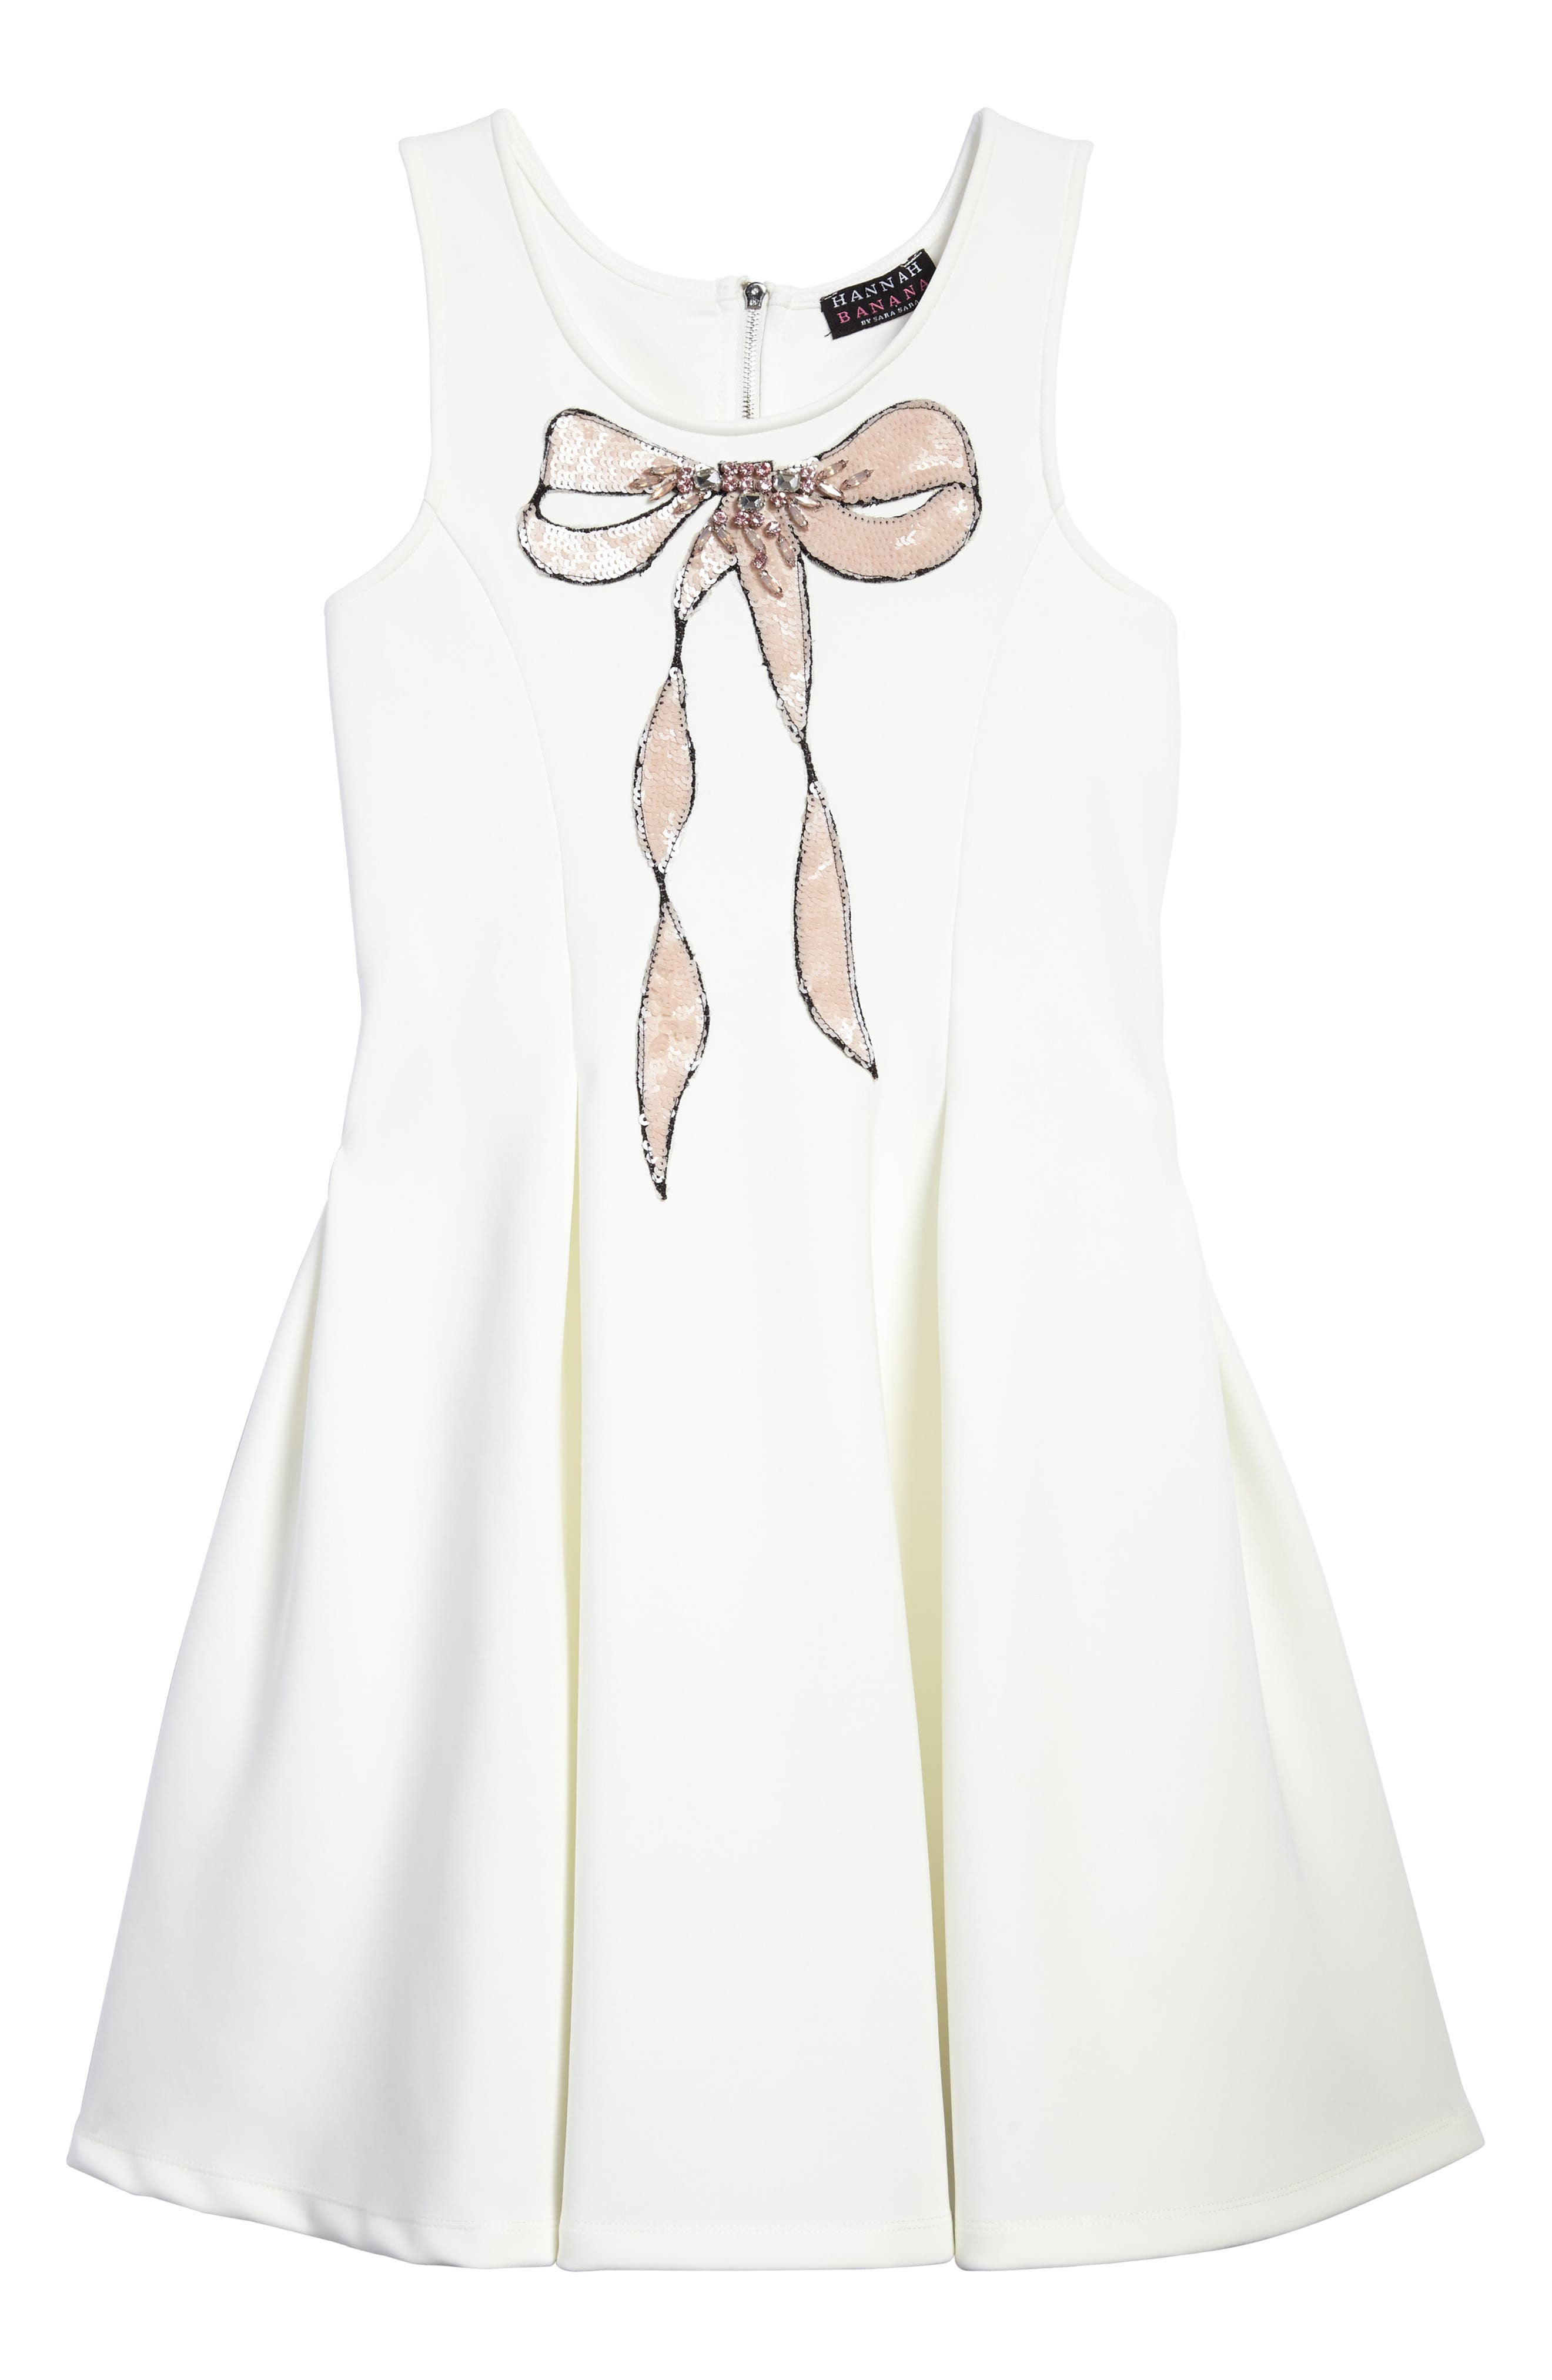 Sequin Embellished Bow A-Line Dress,                         Main,                         color, Cream